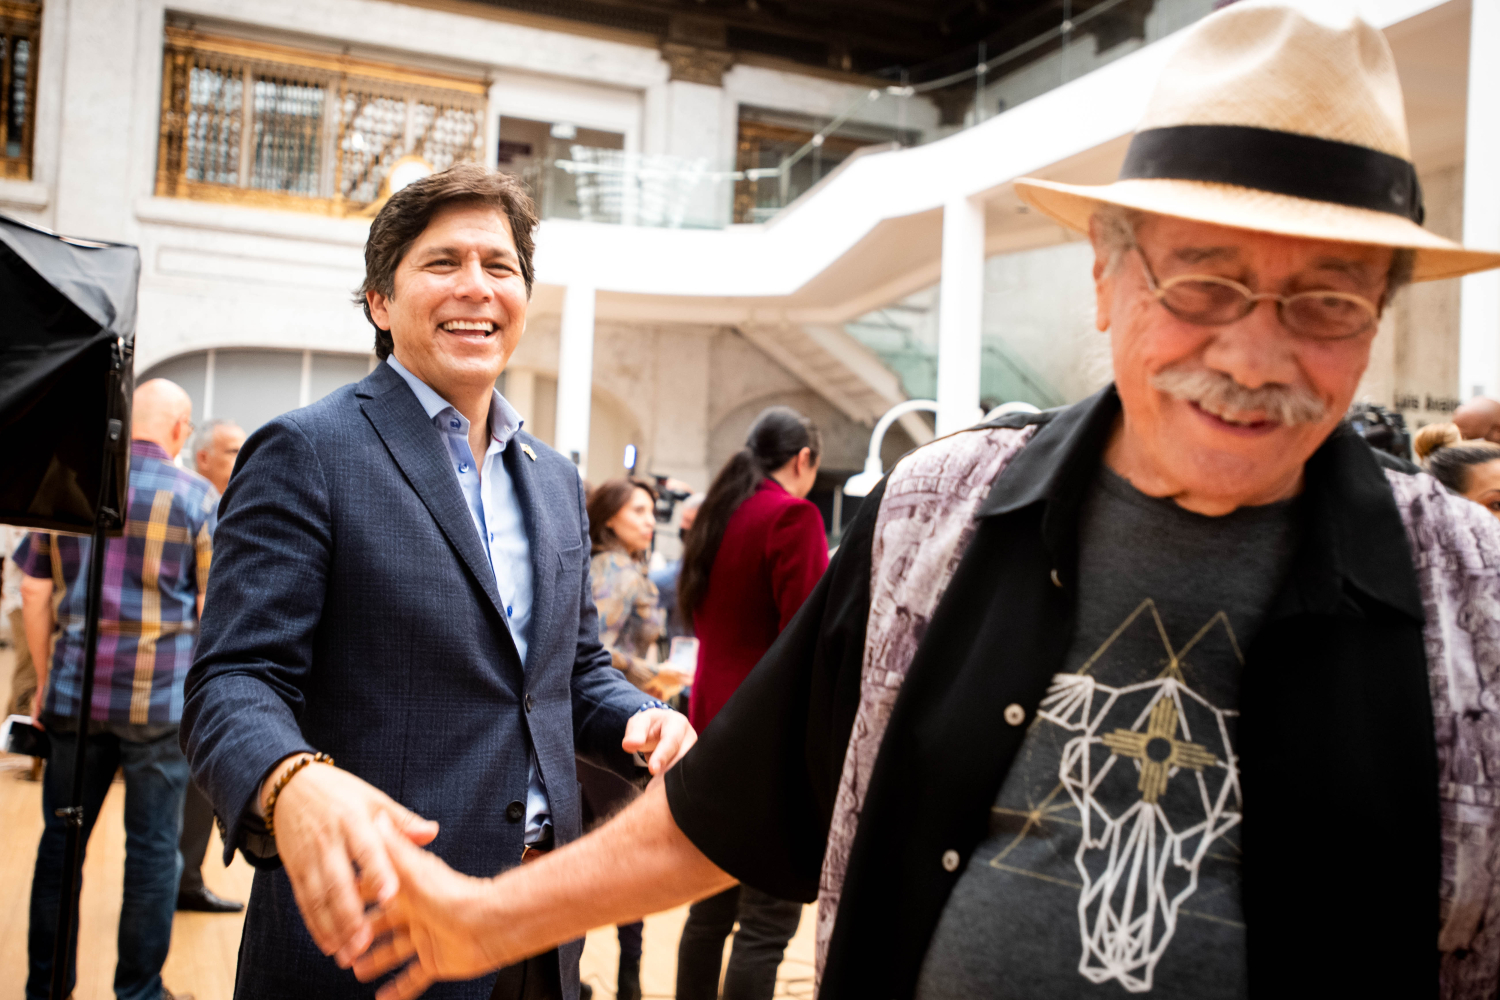 Councilman Kevin De León Joins the Mayor's Race: 'We Can't Go Back to the Old Normal'